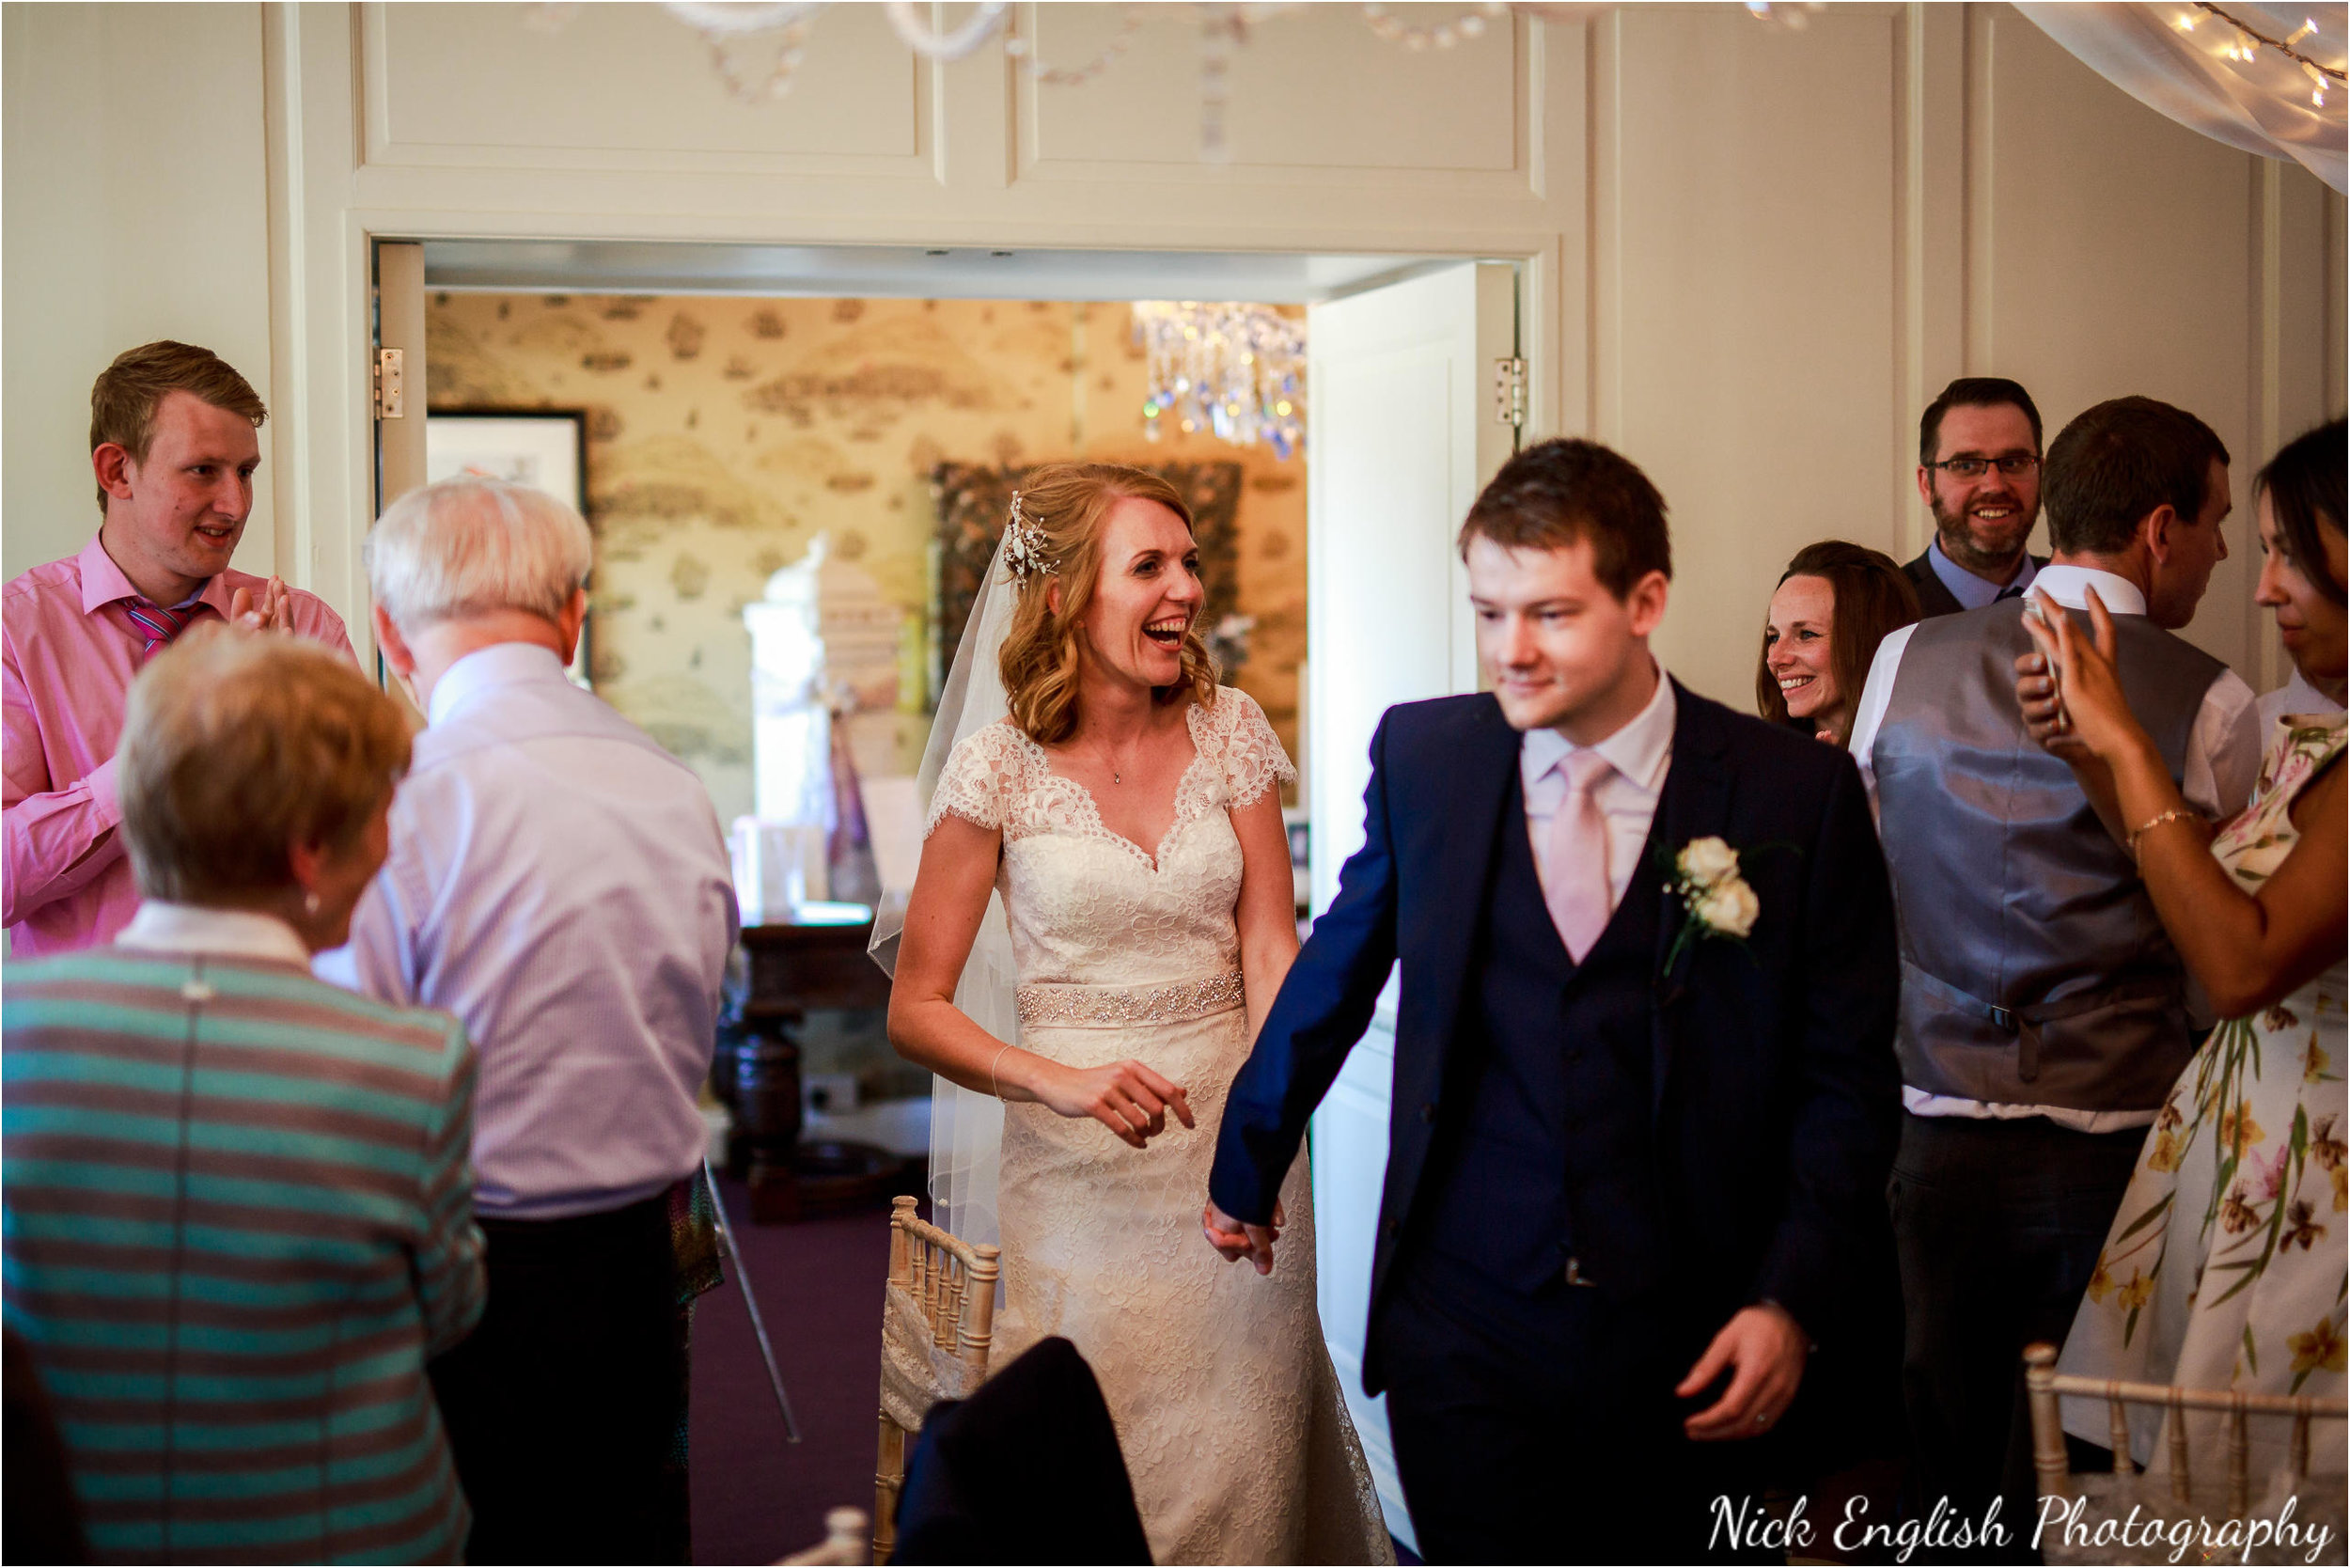 Alison James Wedding Photographs at Eaves Hall West Bradford 164jpg.jpeg